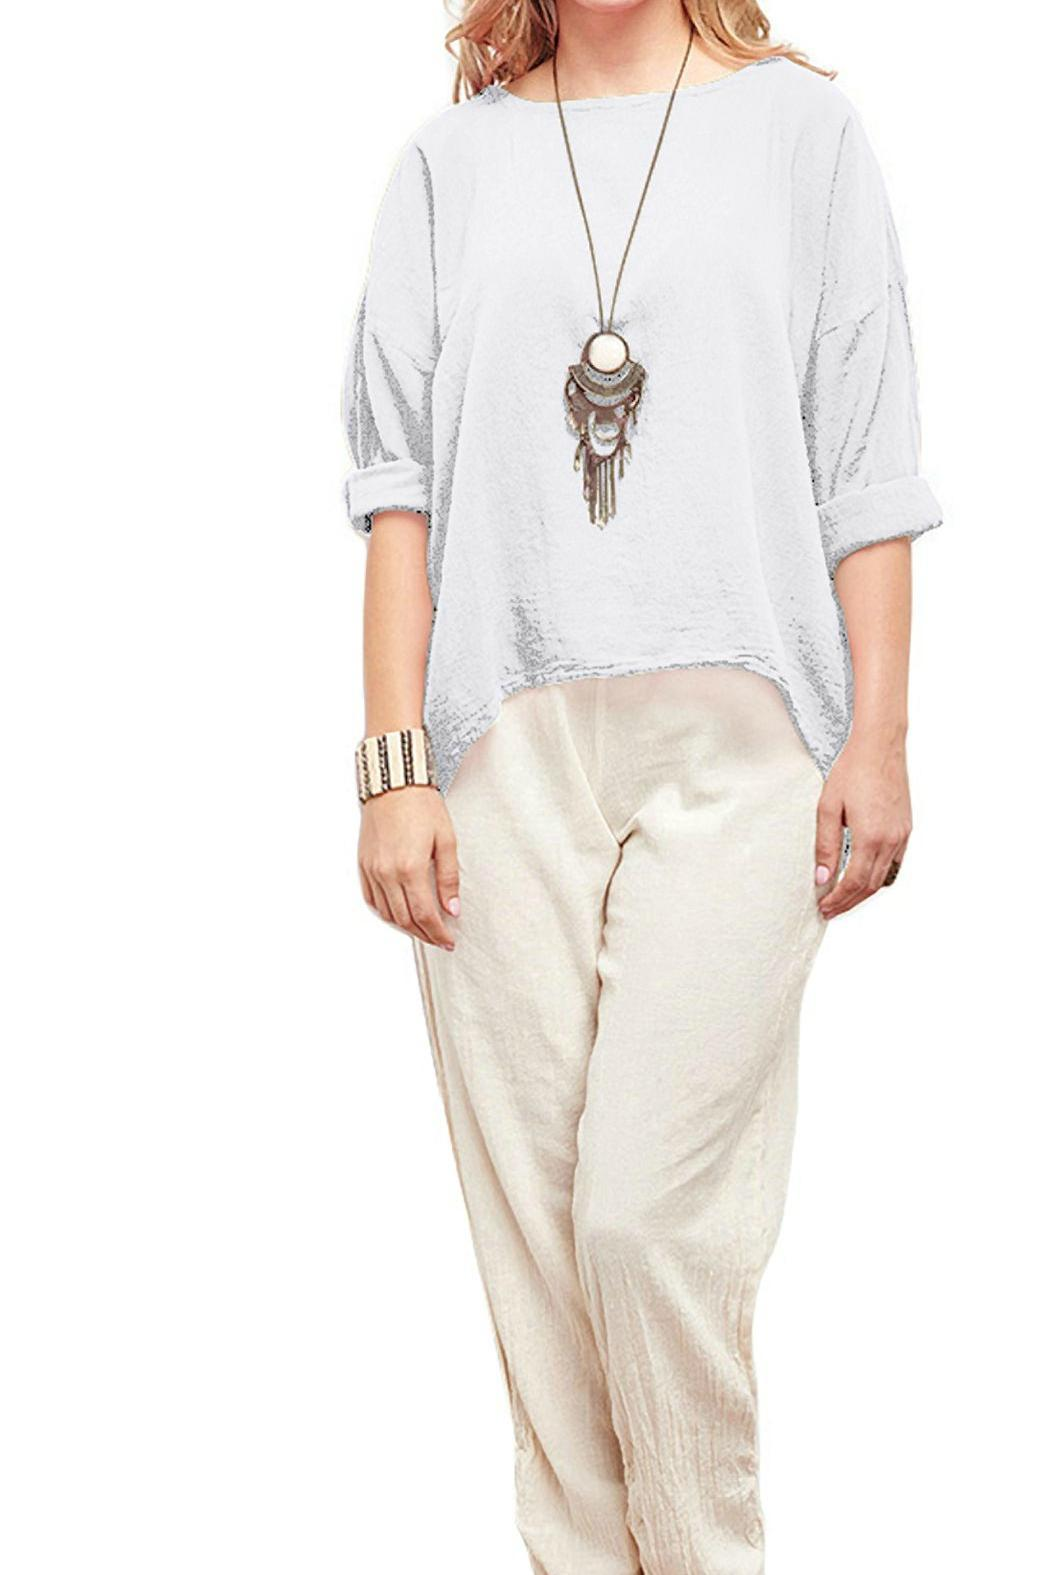 Oh My Gauze Abby Blouse - Front Cropped Image